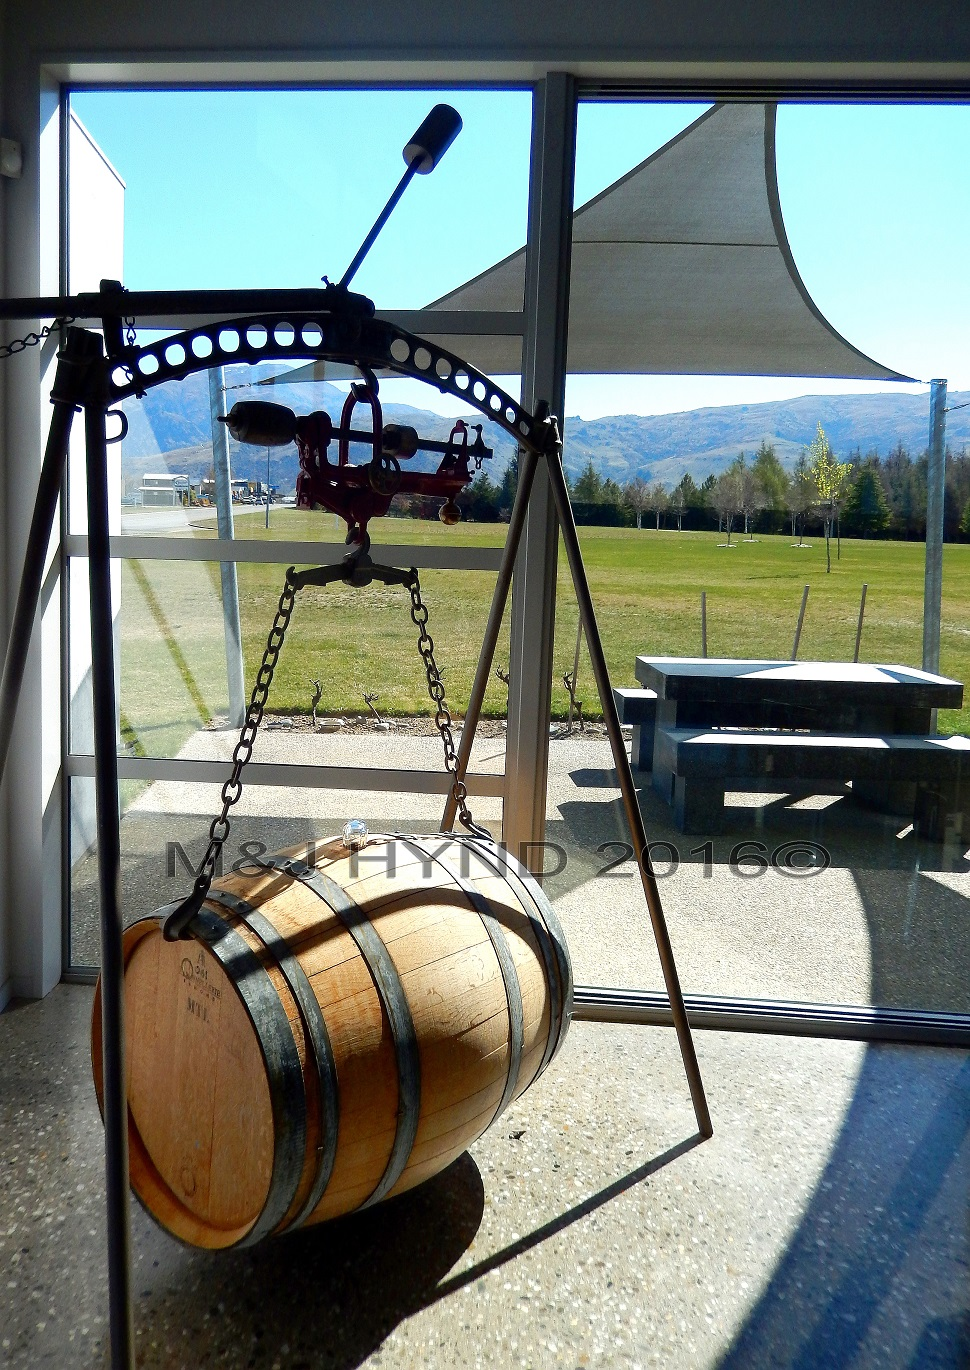 Rockburn Winery swinging barrel, Cromwell, Central Otago, NZ